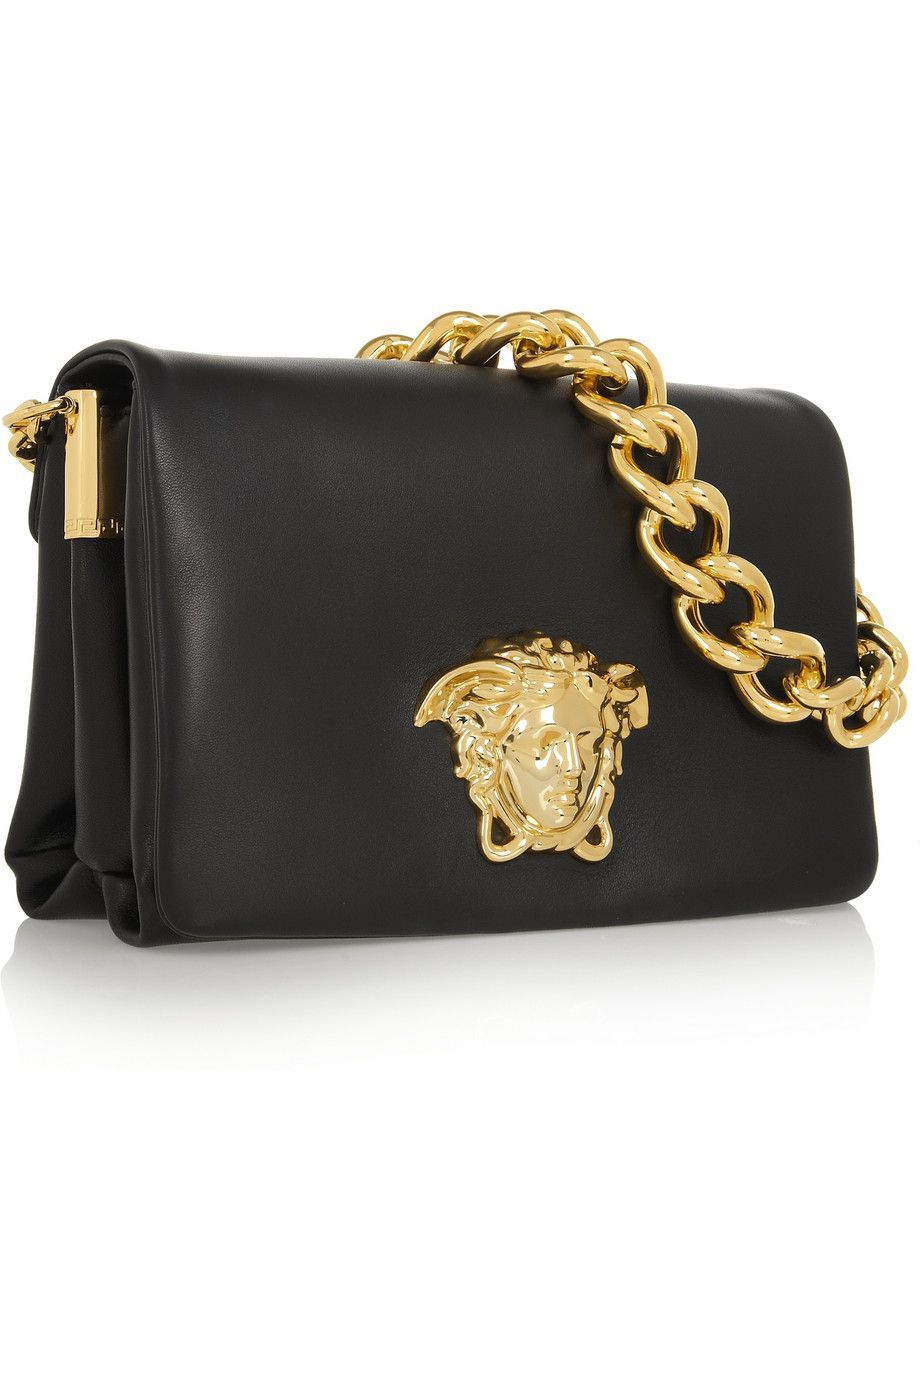 Versacehandbags Leather Shoulder Bag Bags Versace Handbags